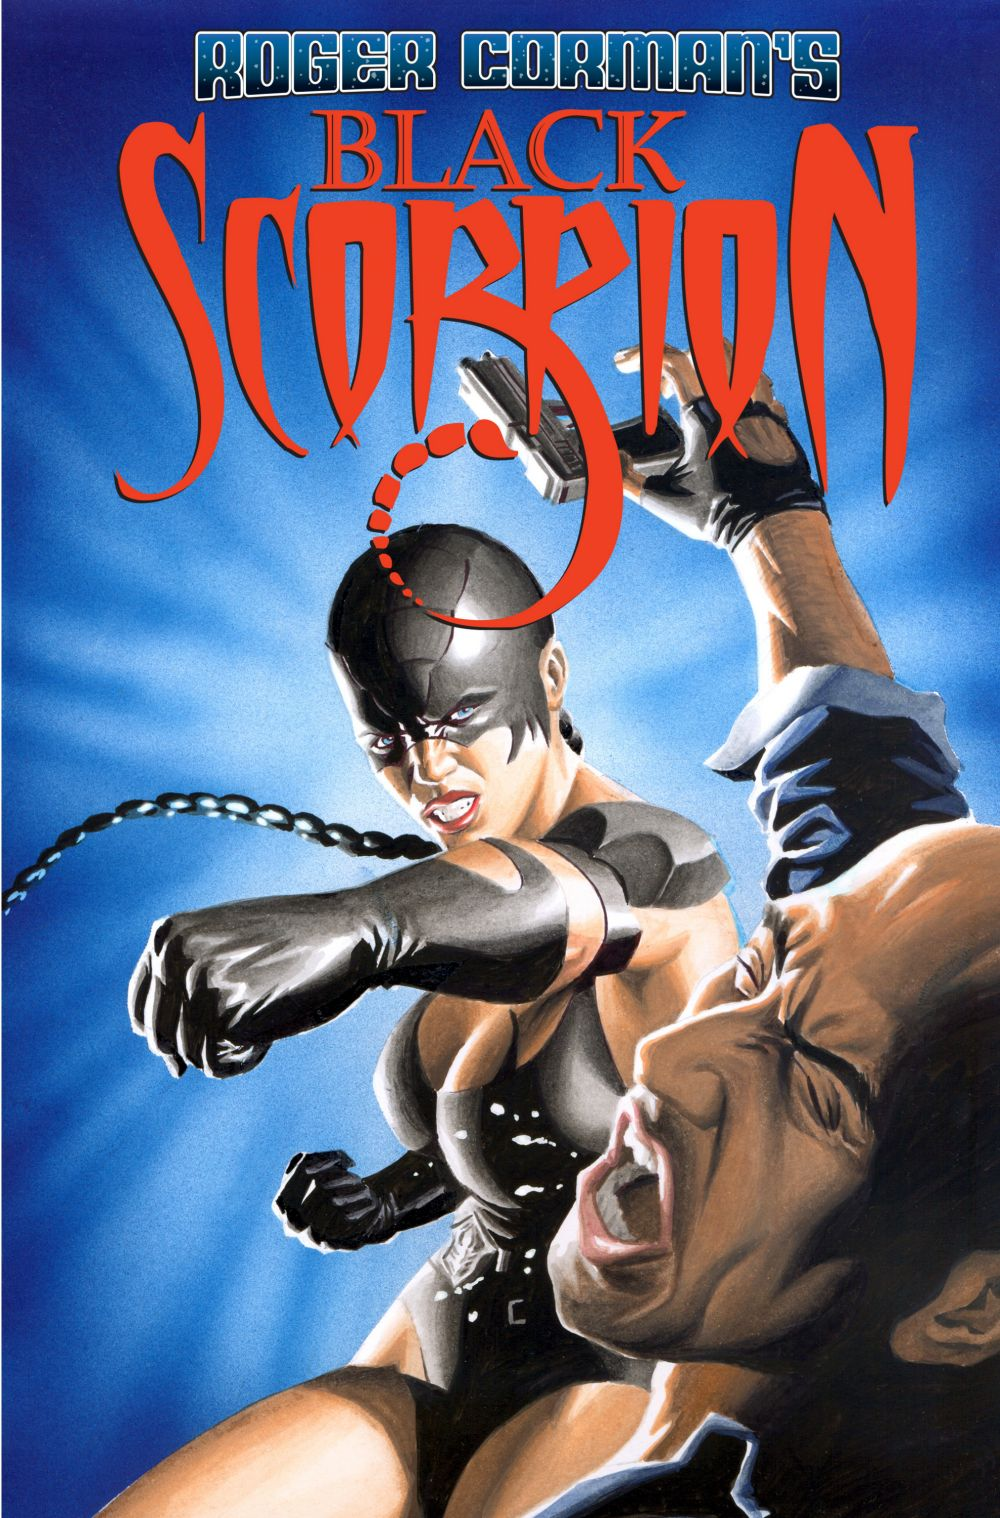 Roger Corman's Black Scorpion: Graphic Novel